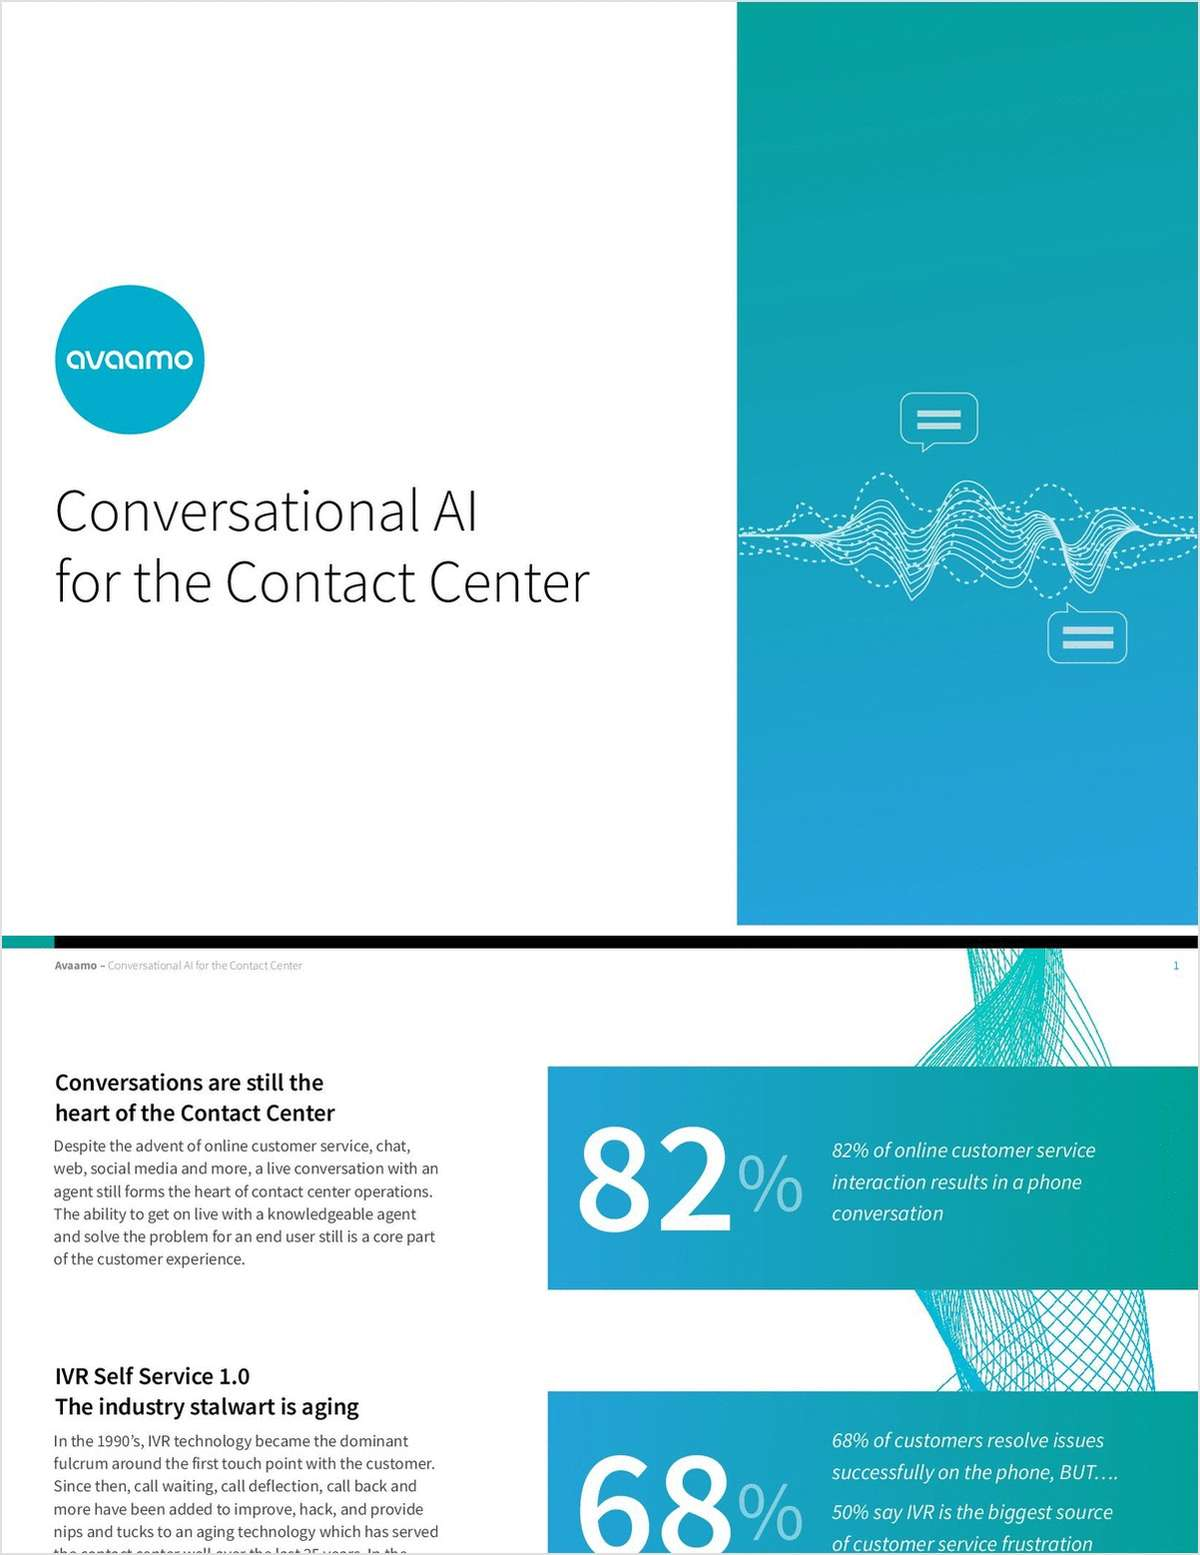 Conversational AI for the Contact Center